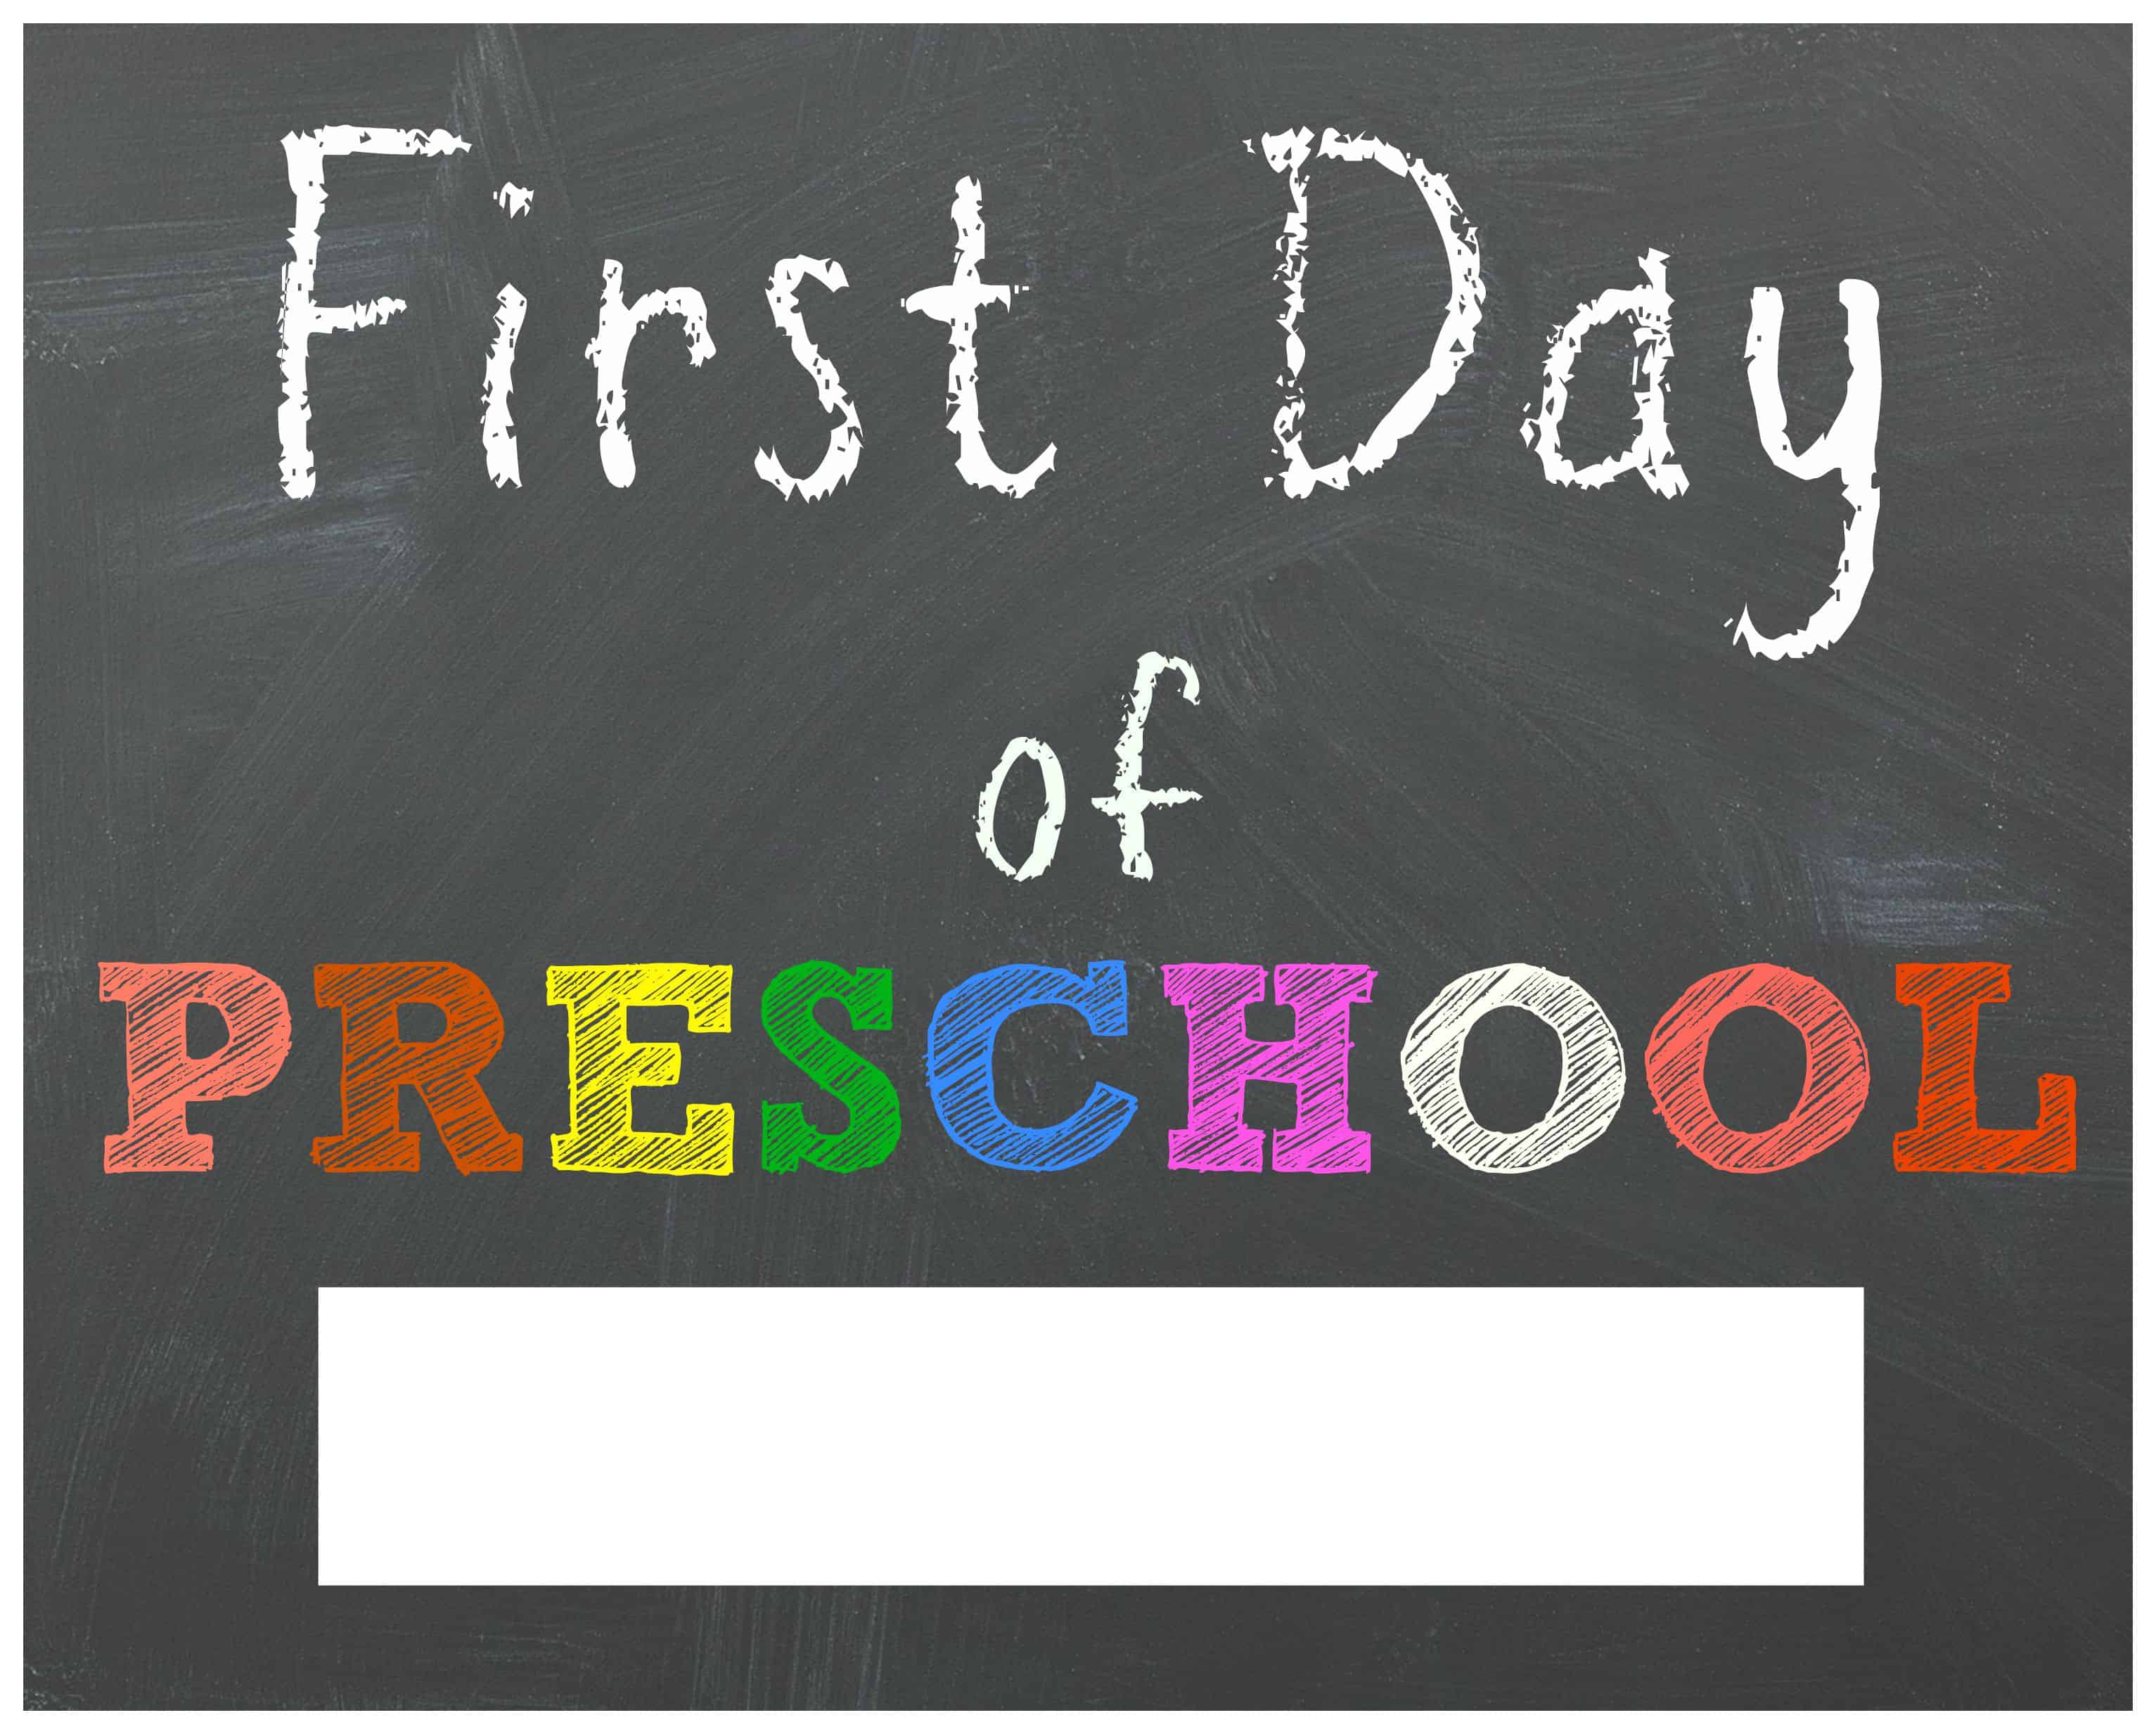 image about First Day of School Printable referred to as No cost Back again in the direction of Faculty Printable Chalkboard Signs or symptoms for Initial Working day